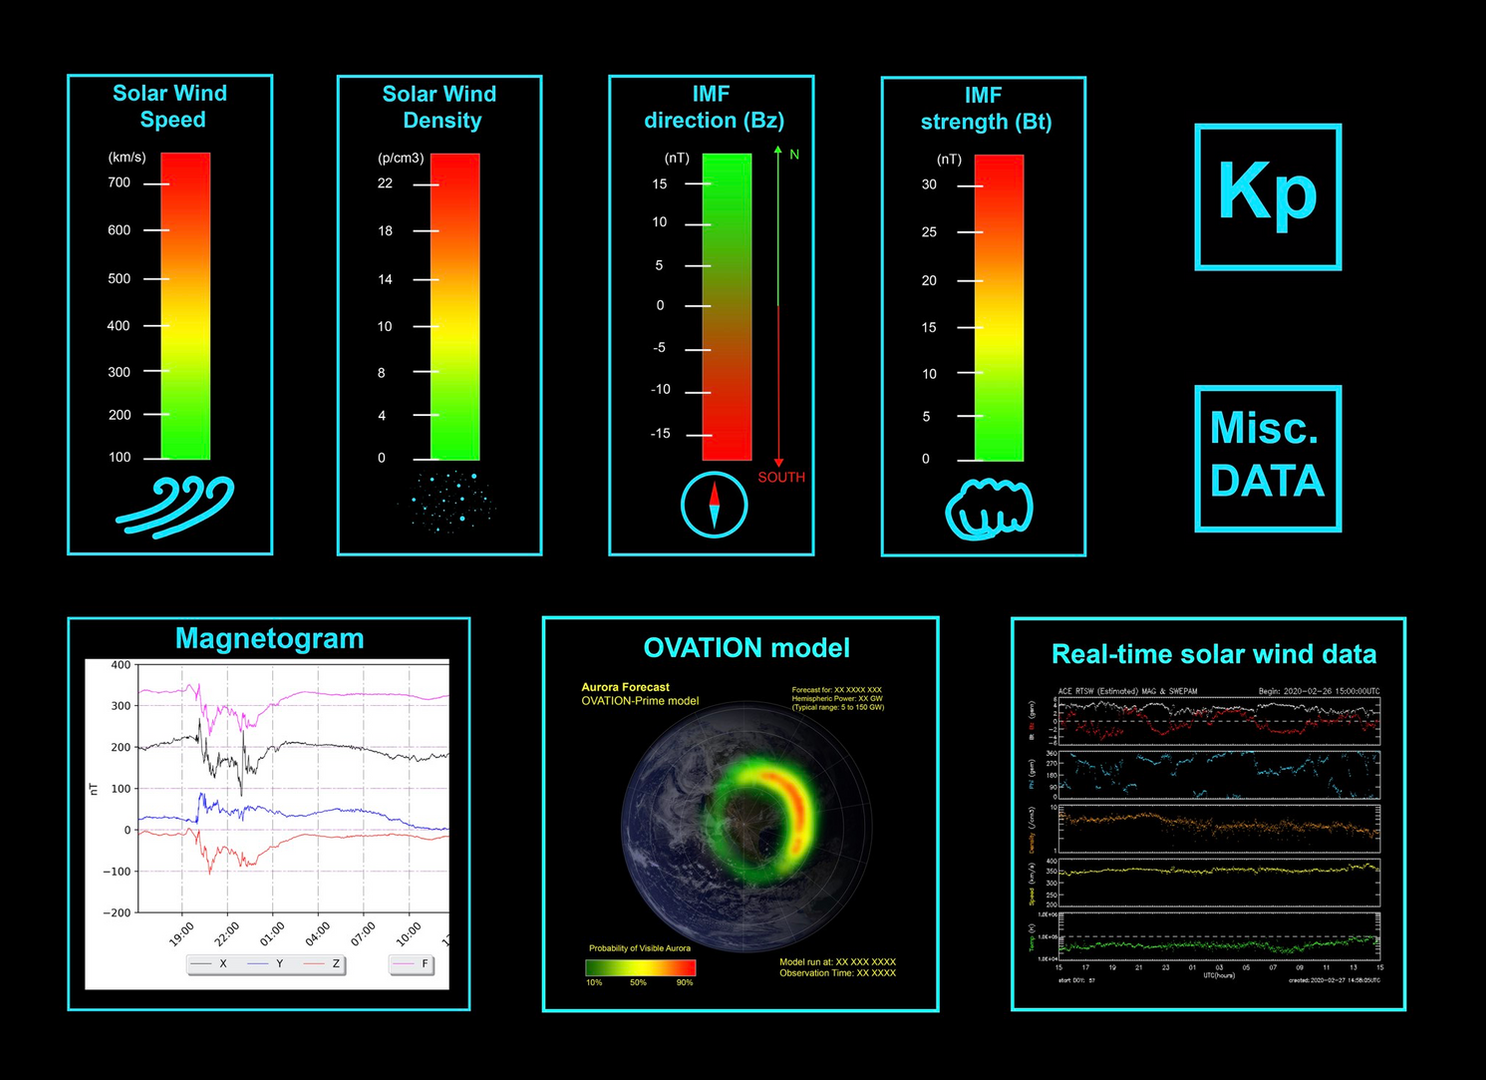 Space weather data